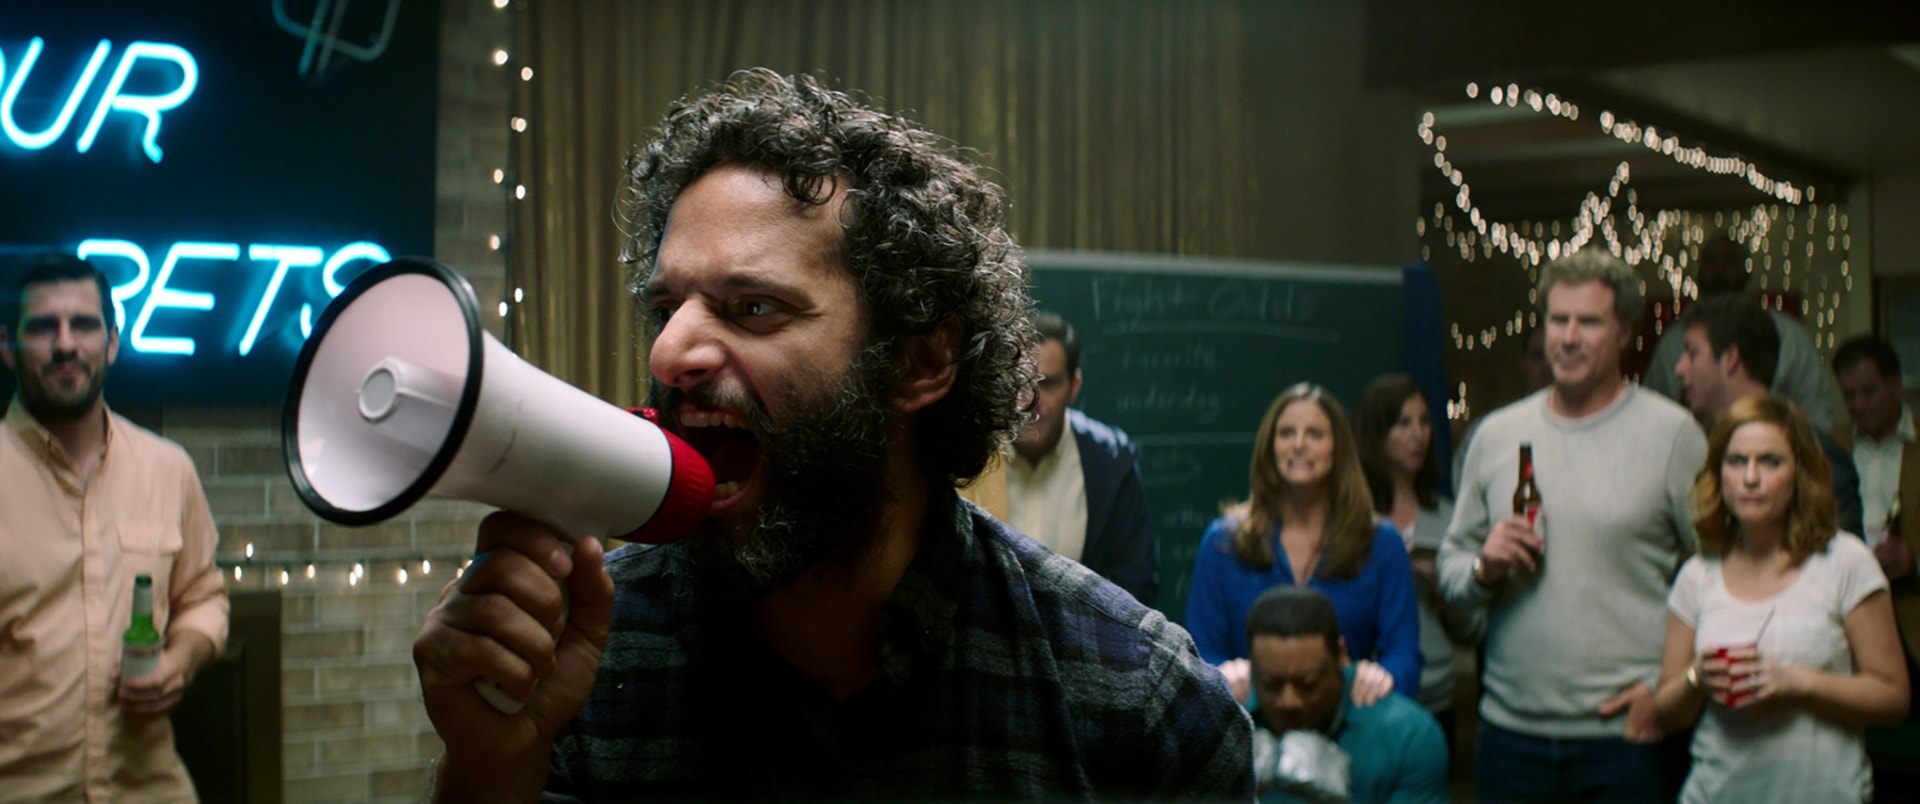 "JASON MANTZOUKAS as Frank, CEDRIC YARBROUGH as Reggie, ANDREA SAVAGE as Laura, WILL FERRELL as Scott Johansen and AMY POEHLER as Kate Johansen in the New Line Cinema and Village Roadshow Pictures comedy ""THE HOUSE,"" a Warner Bros. Pictures release."